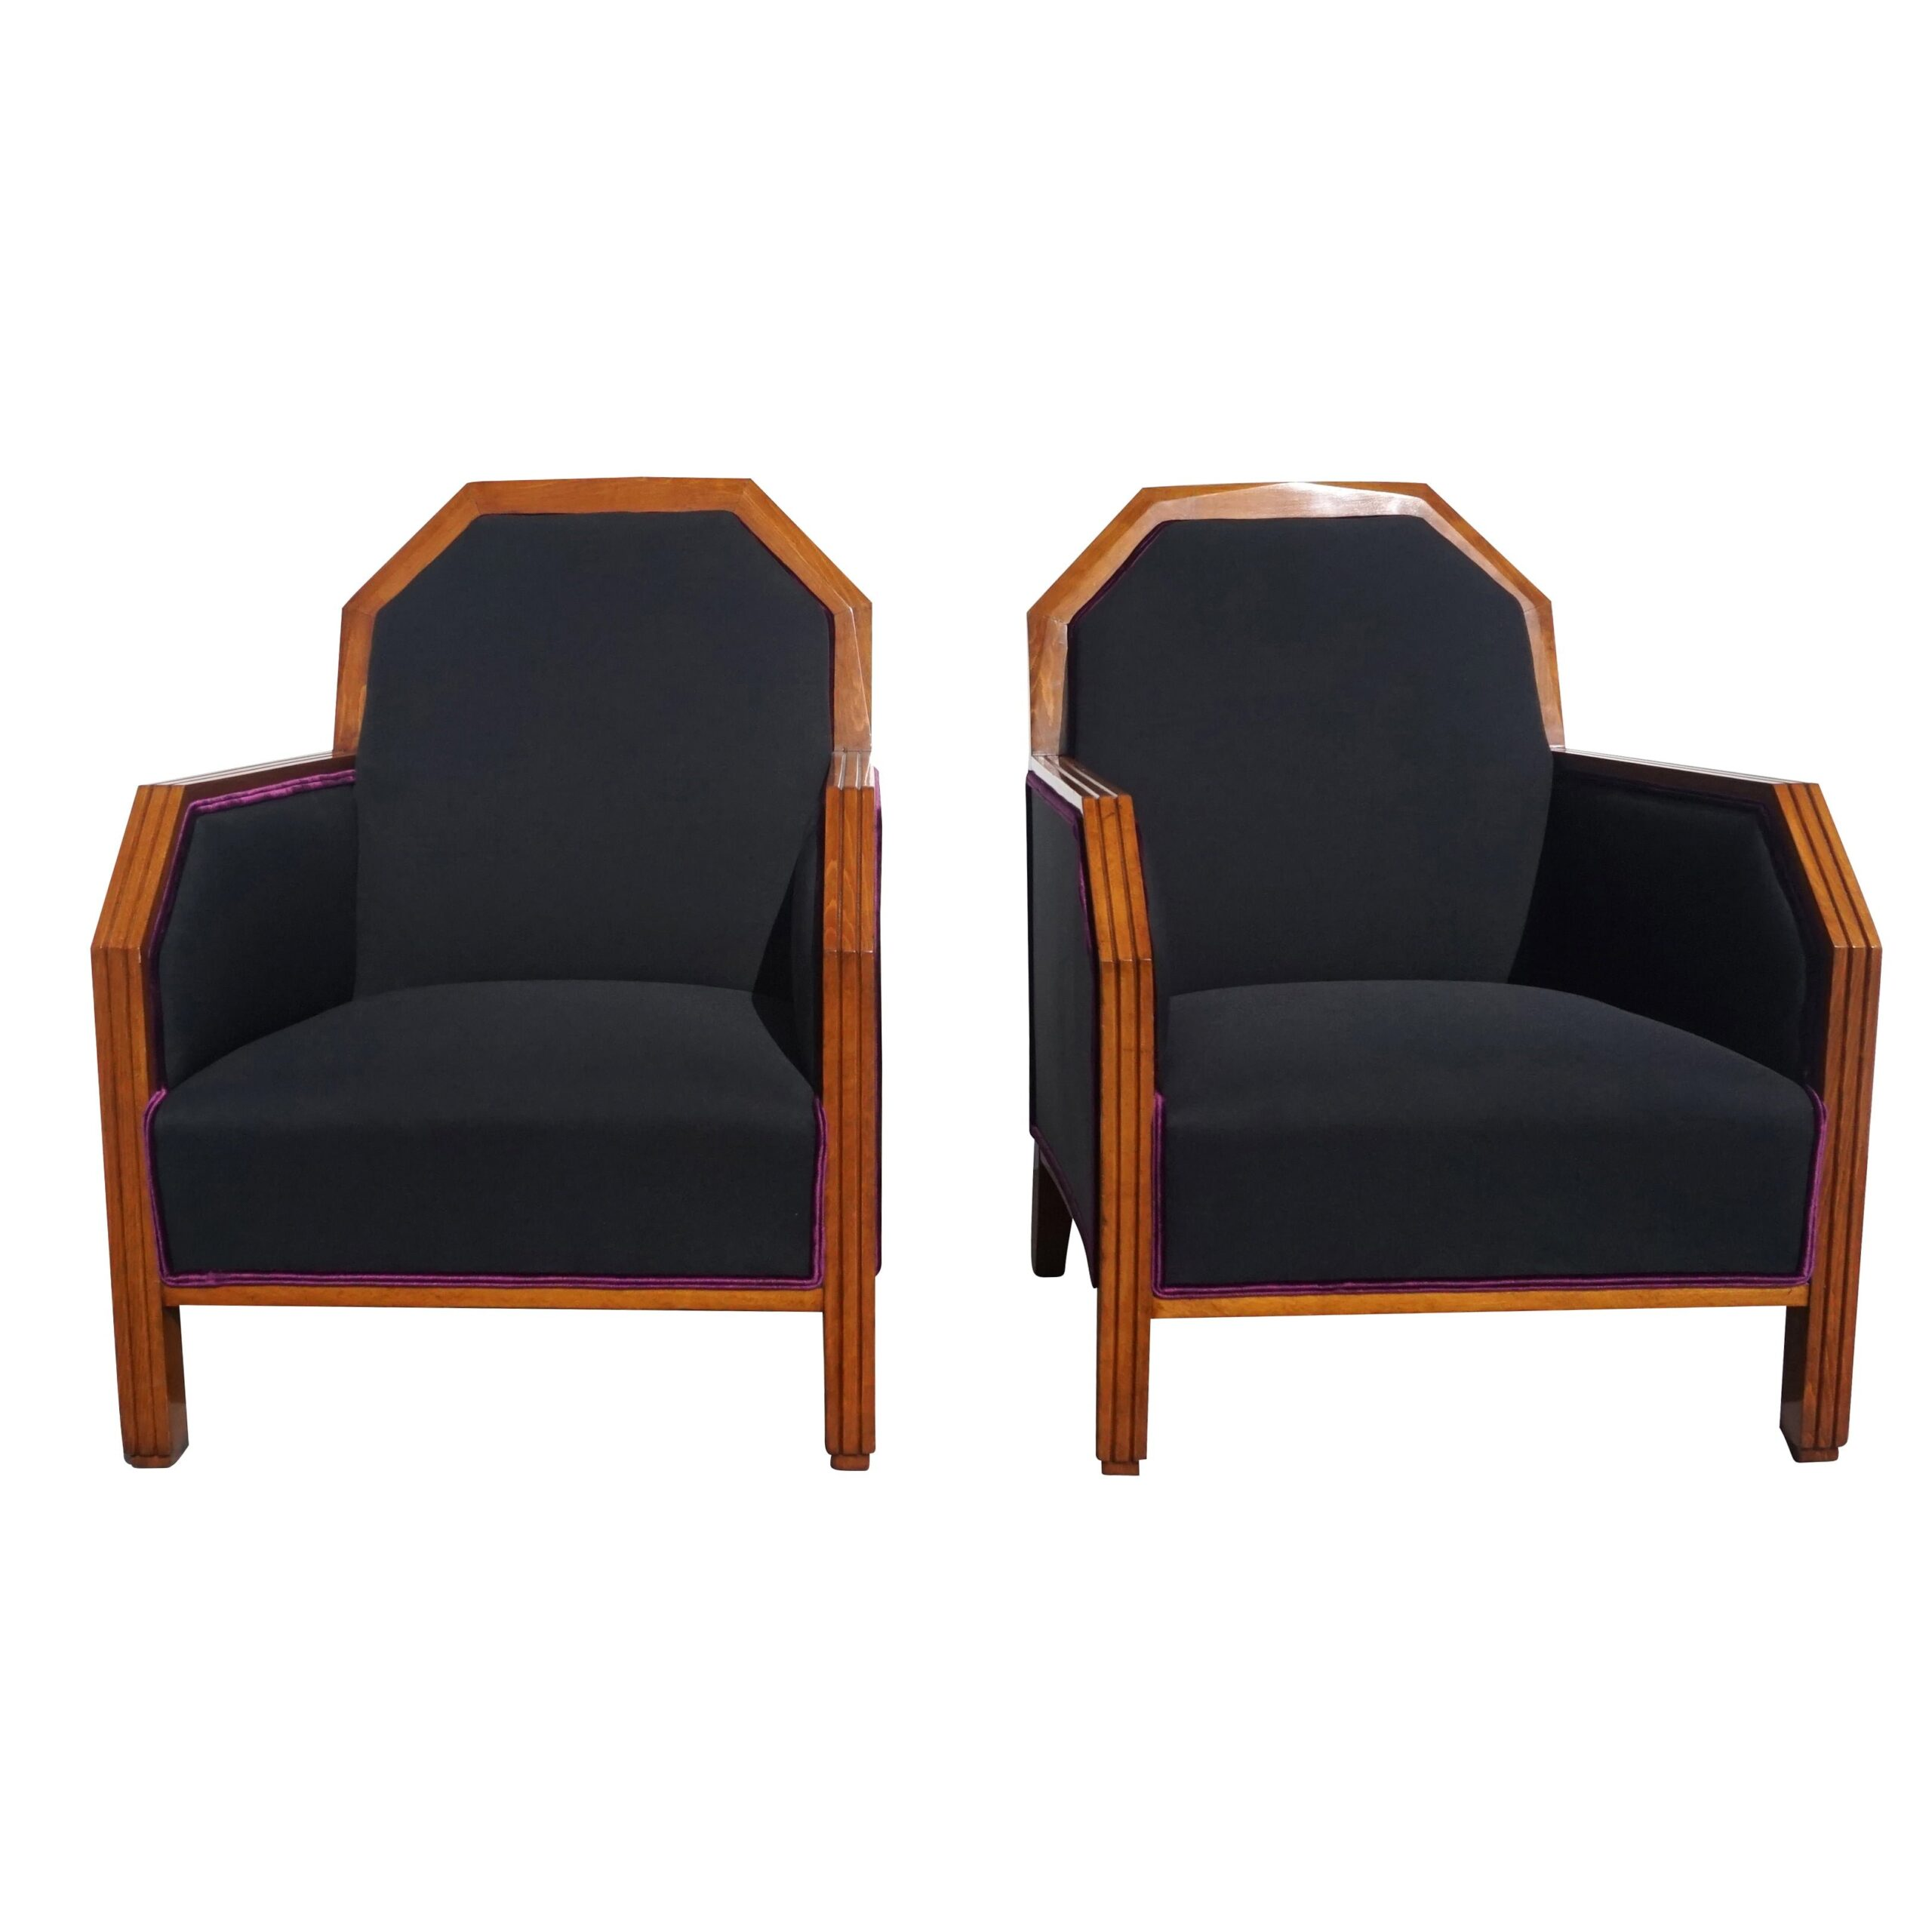 20th Century French Art Deco Club Chairs – Black Linen Corner Chairs